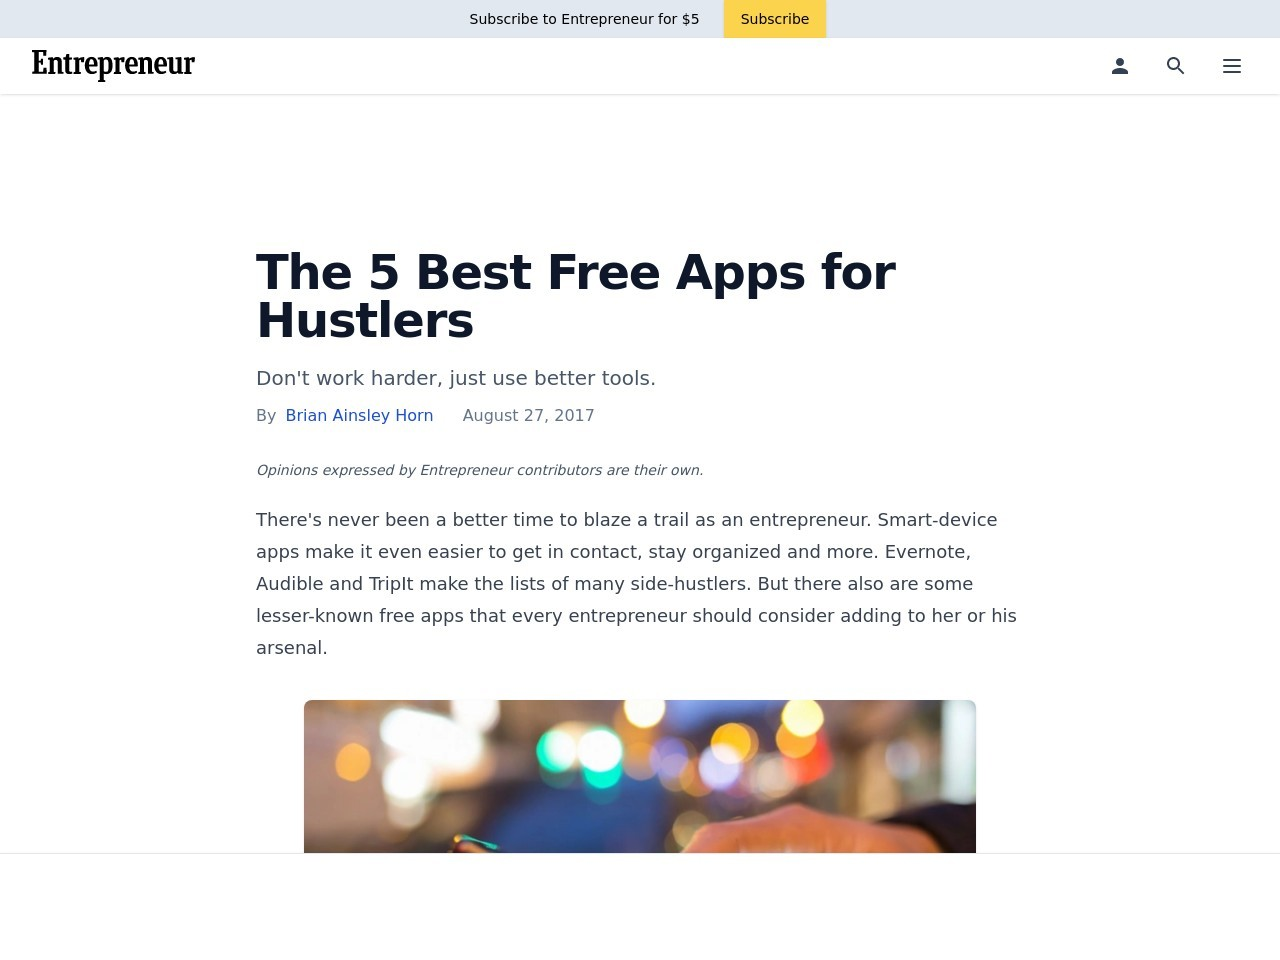 The 5 Best Free Apps for Hustlers